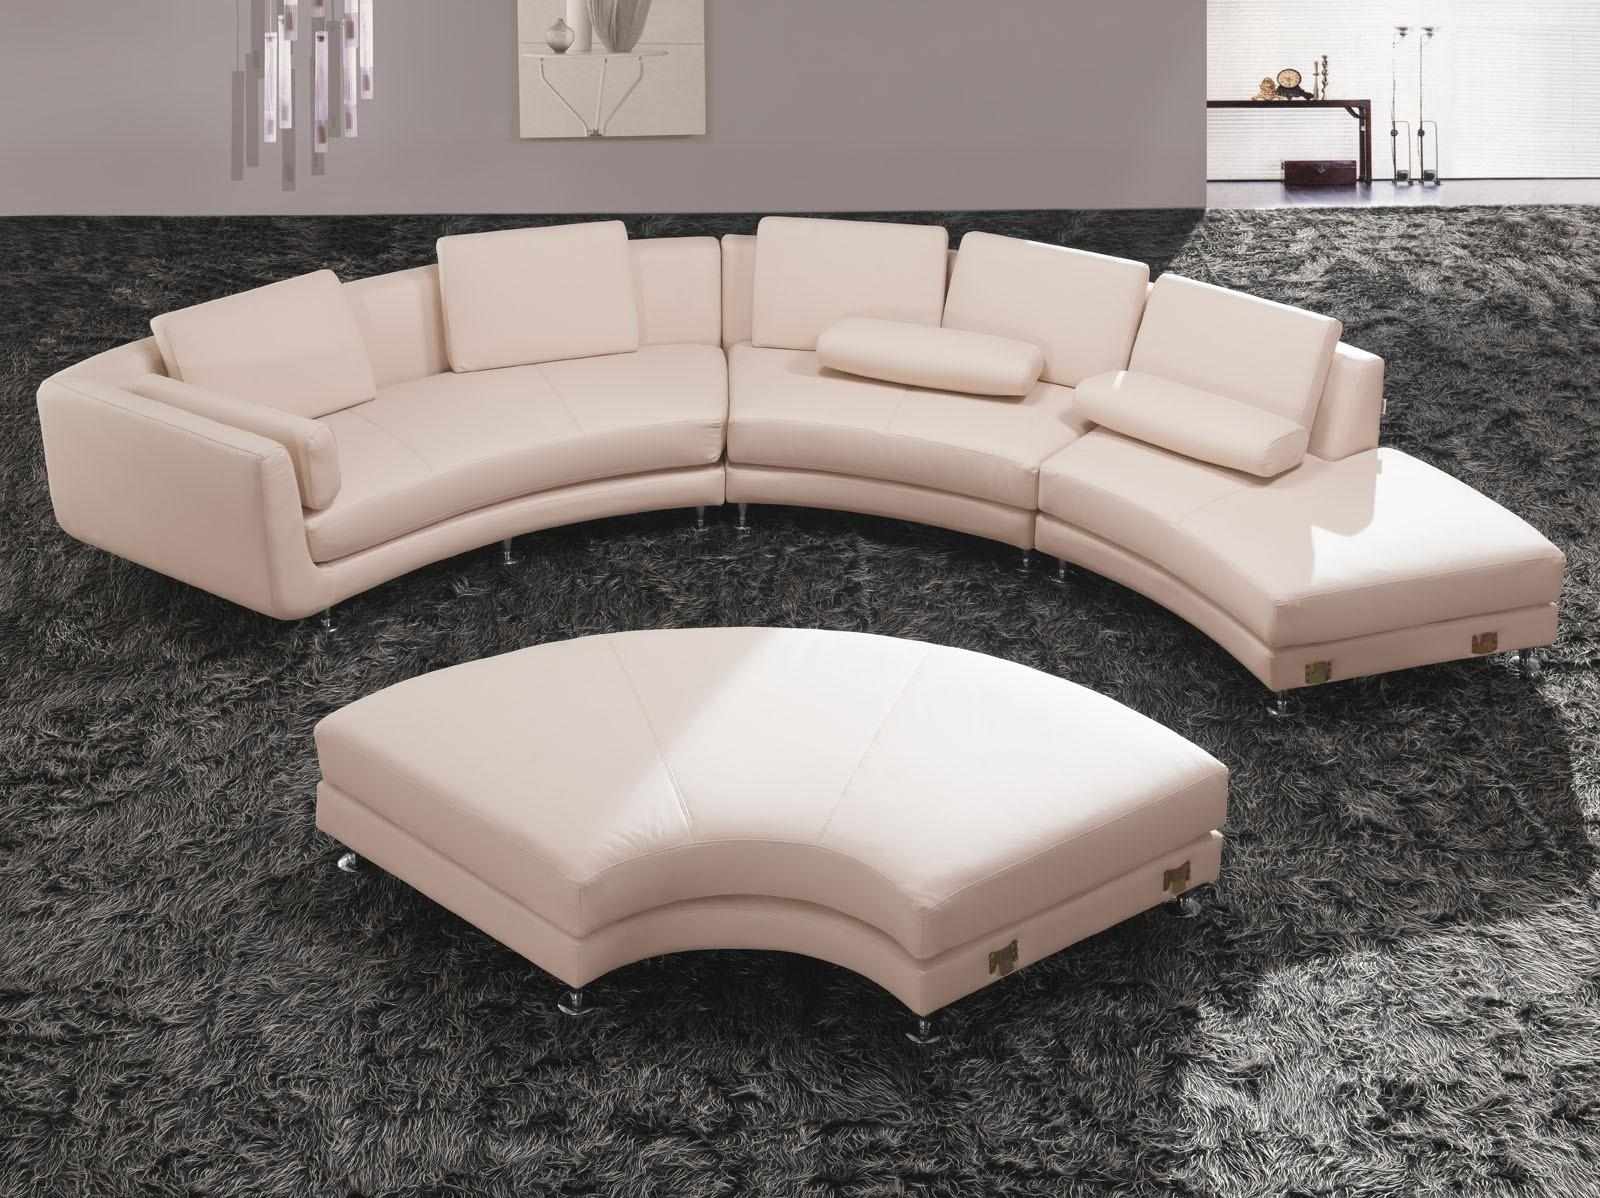 Circular Sectional Sofa Canada | Tehranmix Decoration Throughout Small Curved Sectional Sofas (Image 2 of 20)